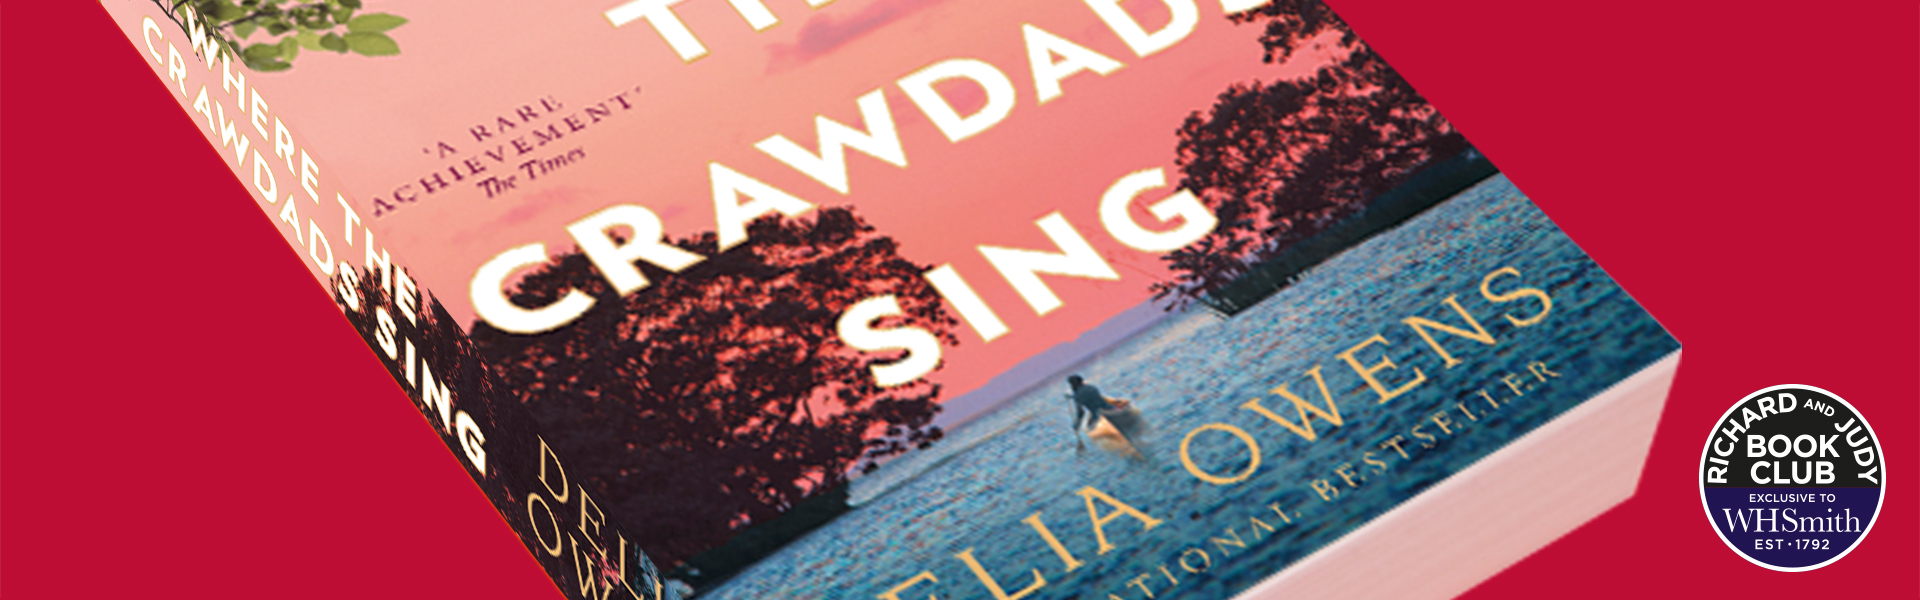 Richard and Judy Introduce Where the Crawdads Sing by Delia Owens